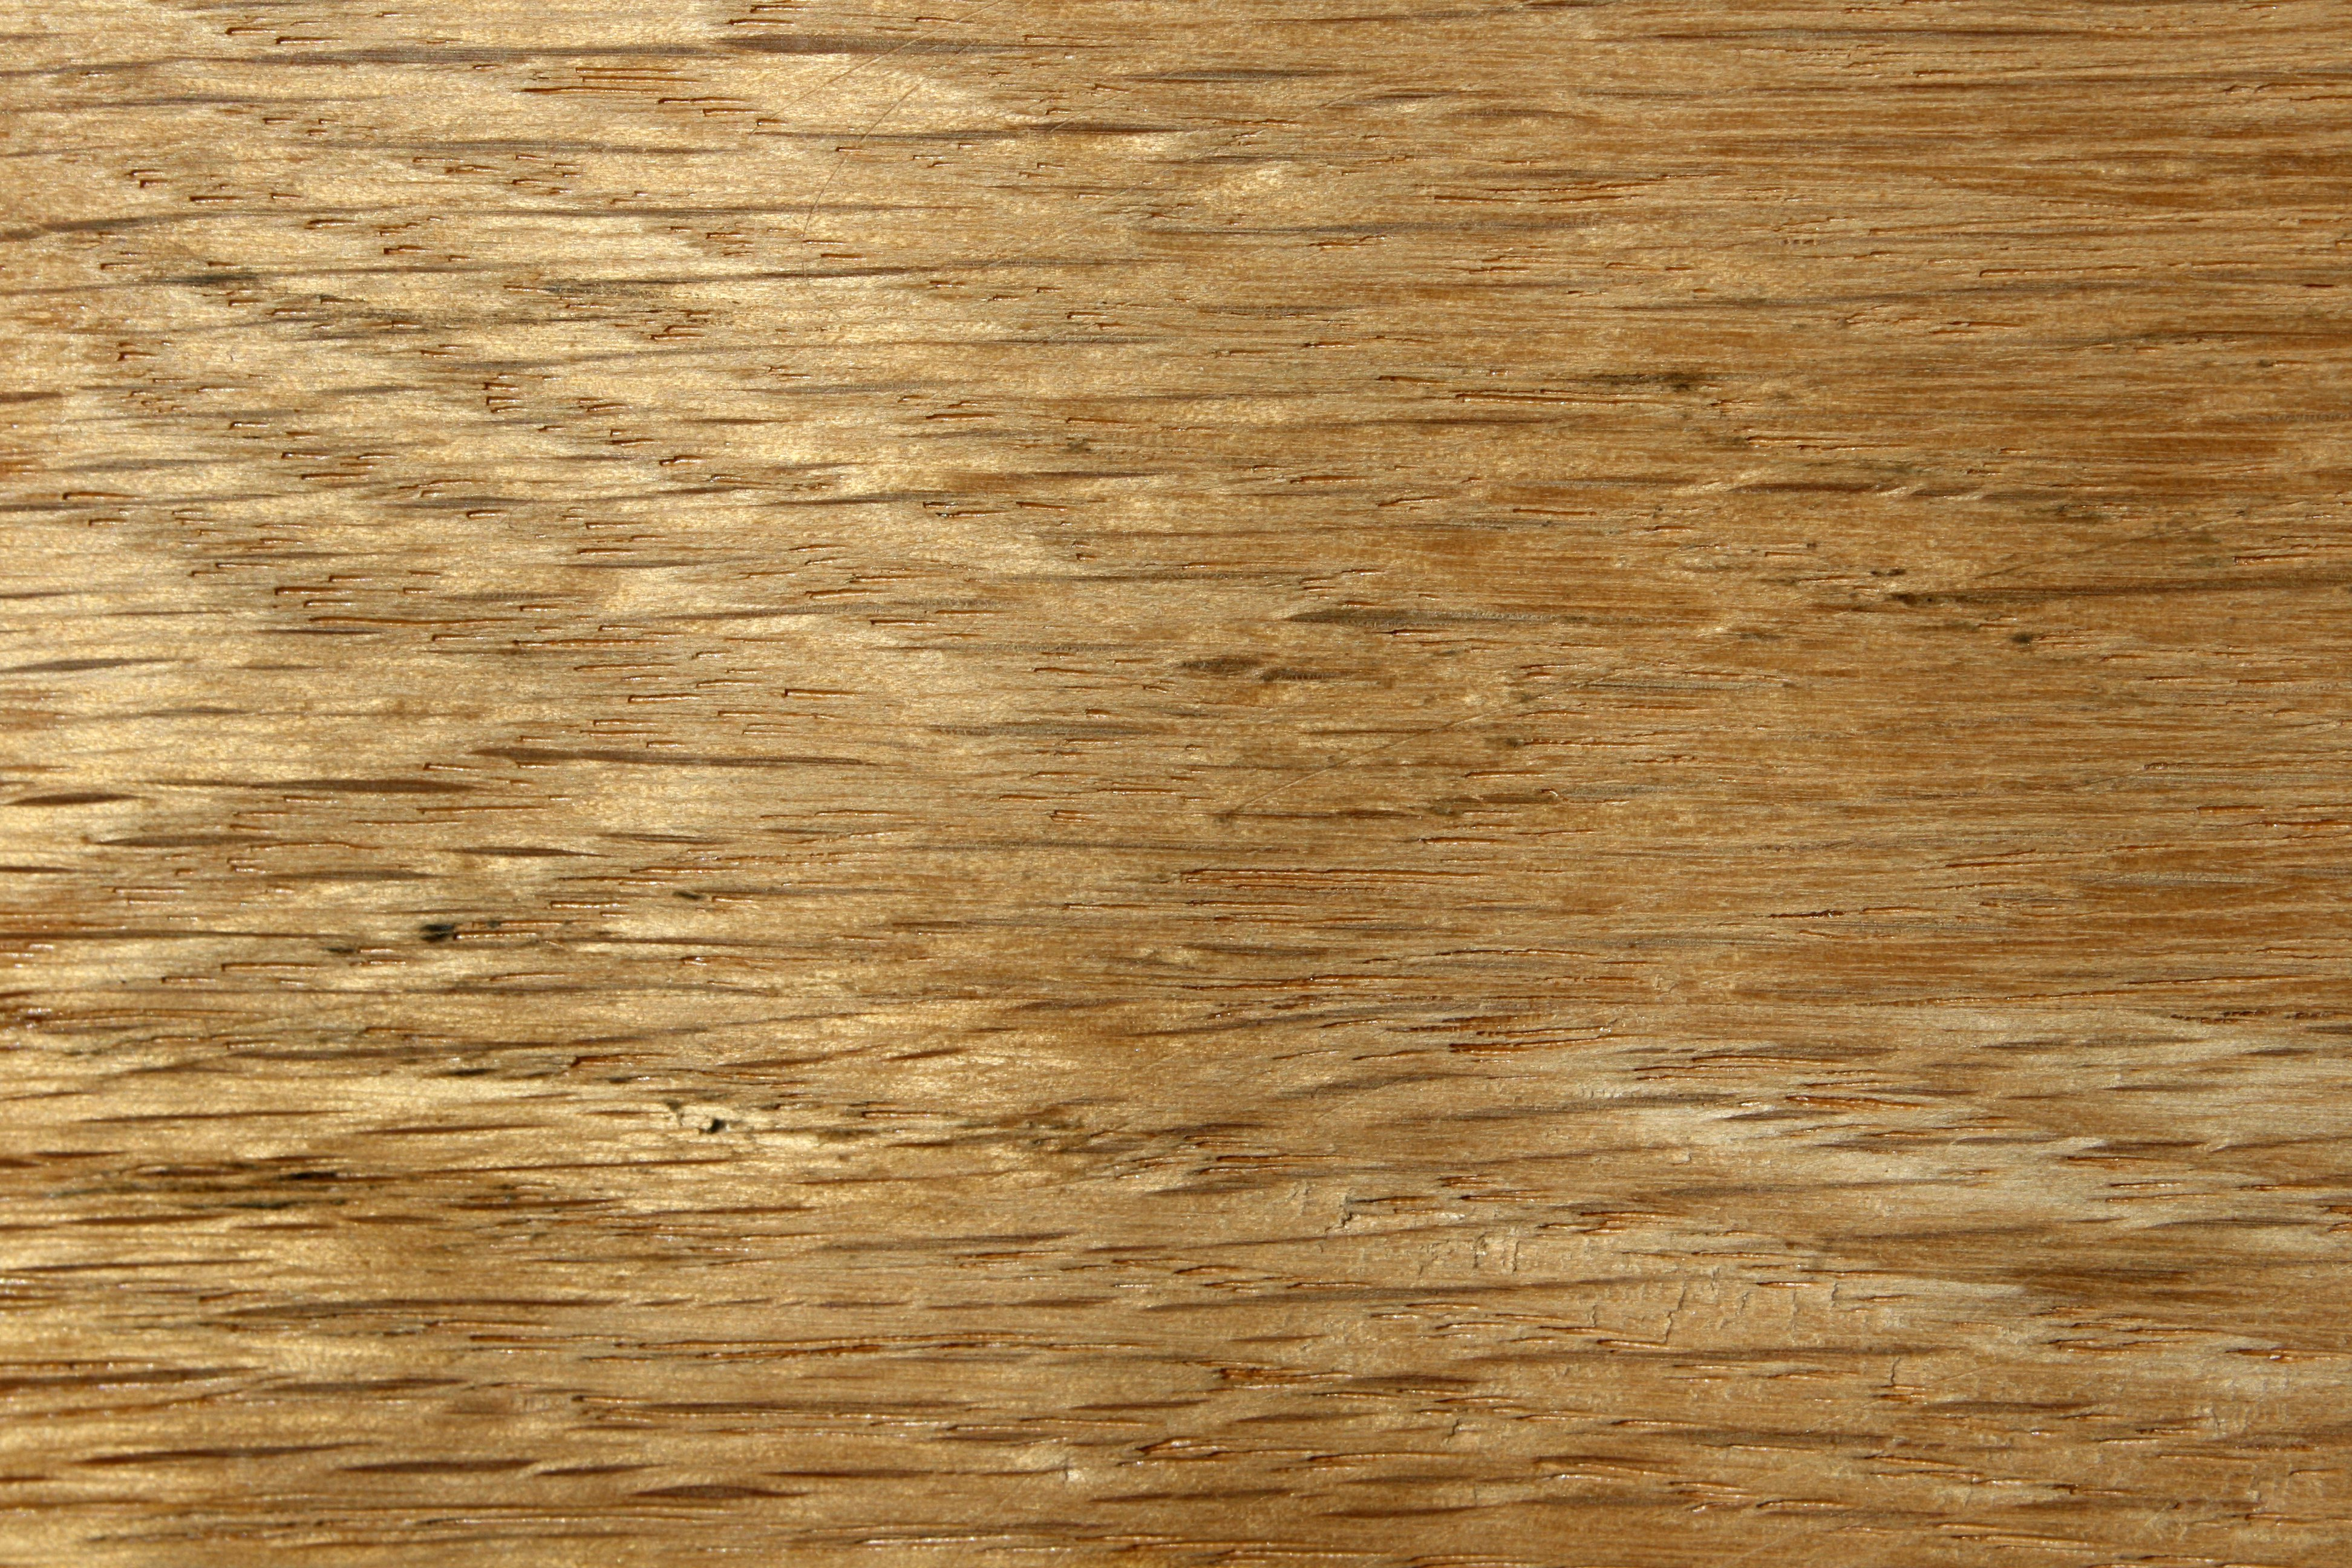 Oak Wood Grain Texture Close Up Picture | Free Photograph | Photos ...